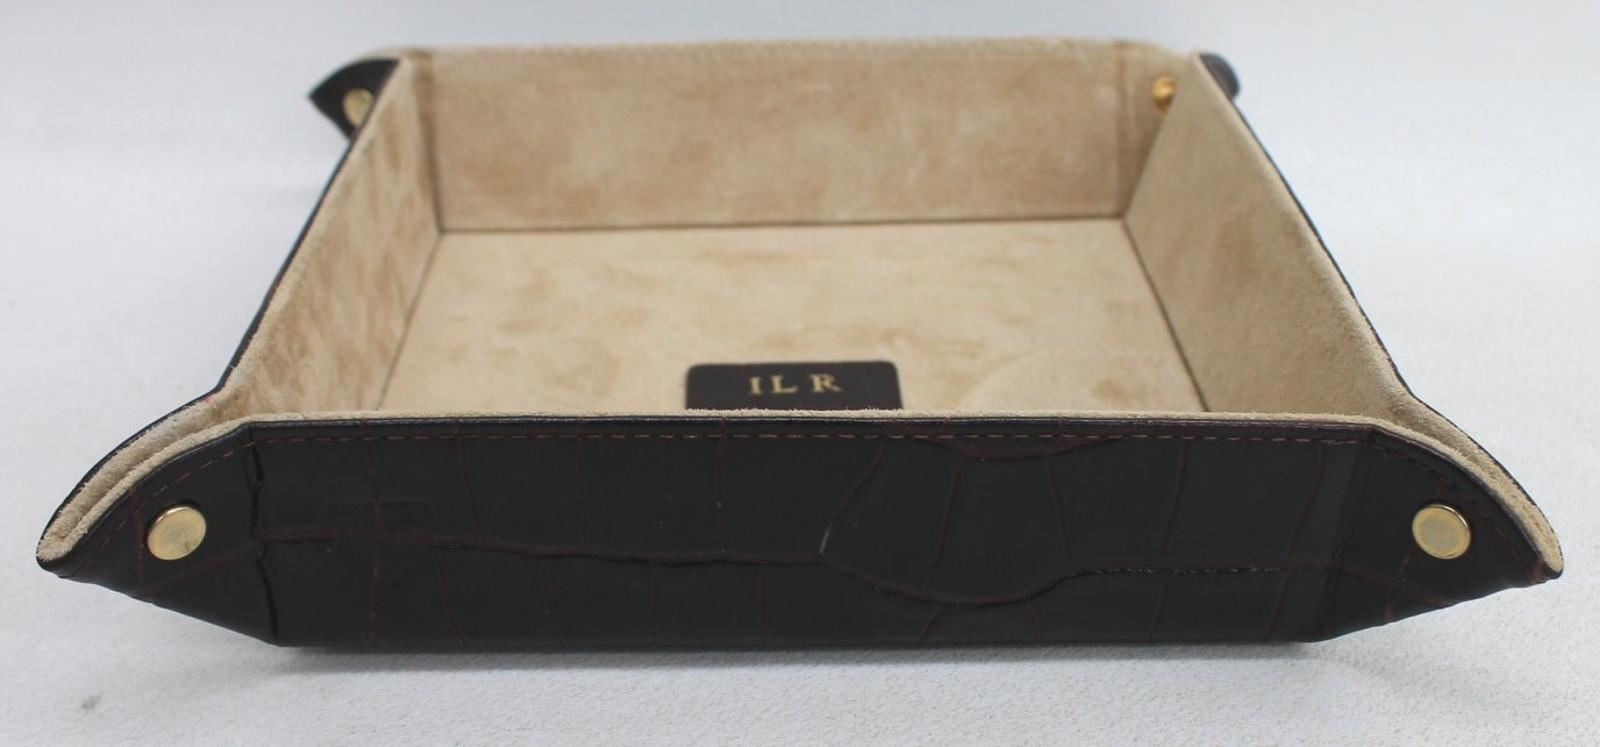 ASPINAL-OF-LONDON-Mahogany-Croc-Print-Leather-Medium-Tidy-Tray-Embossed-ILR-NEW